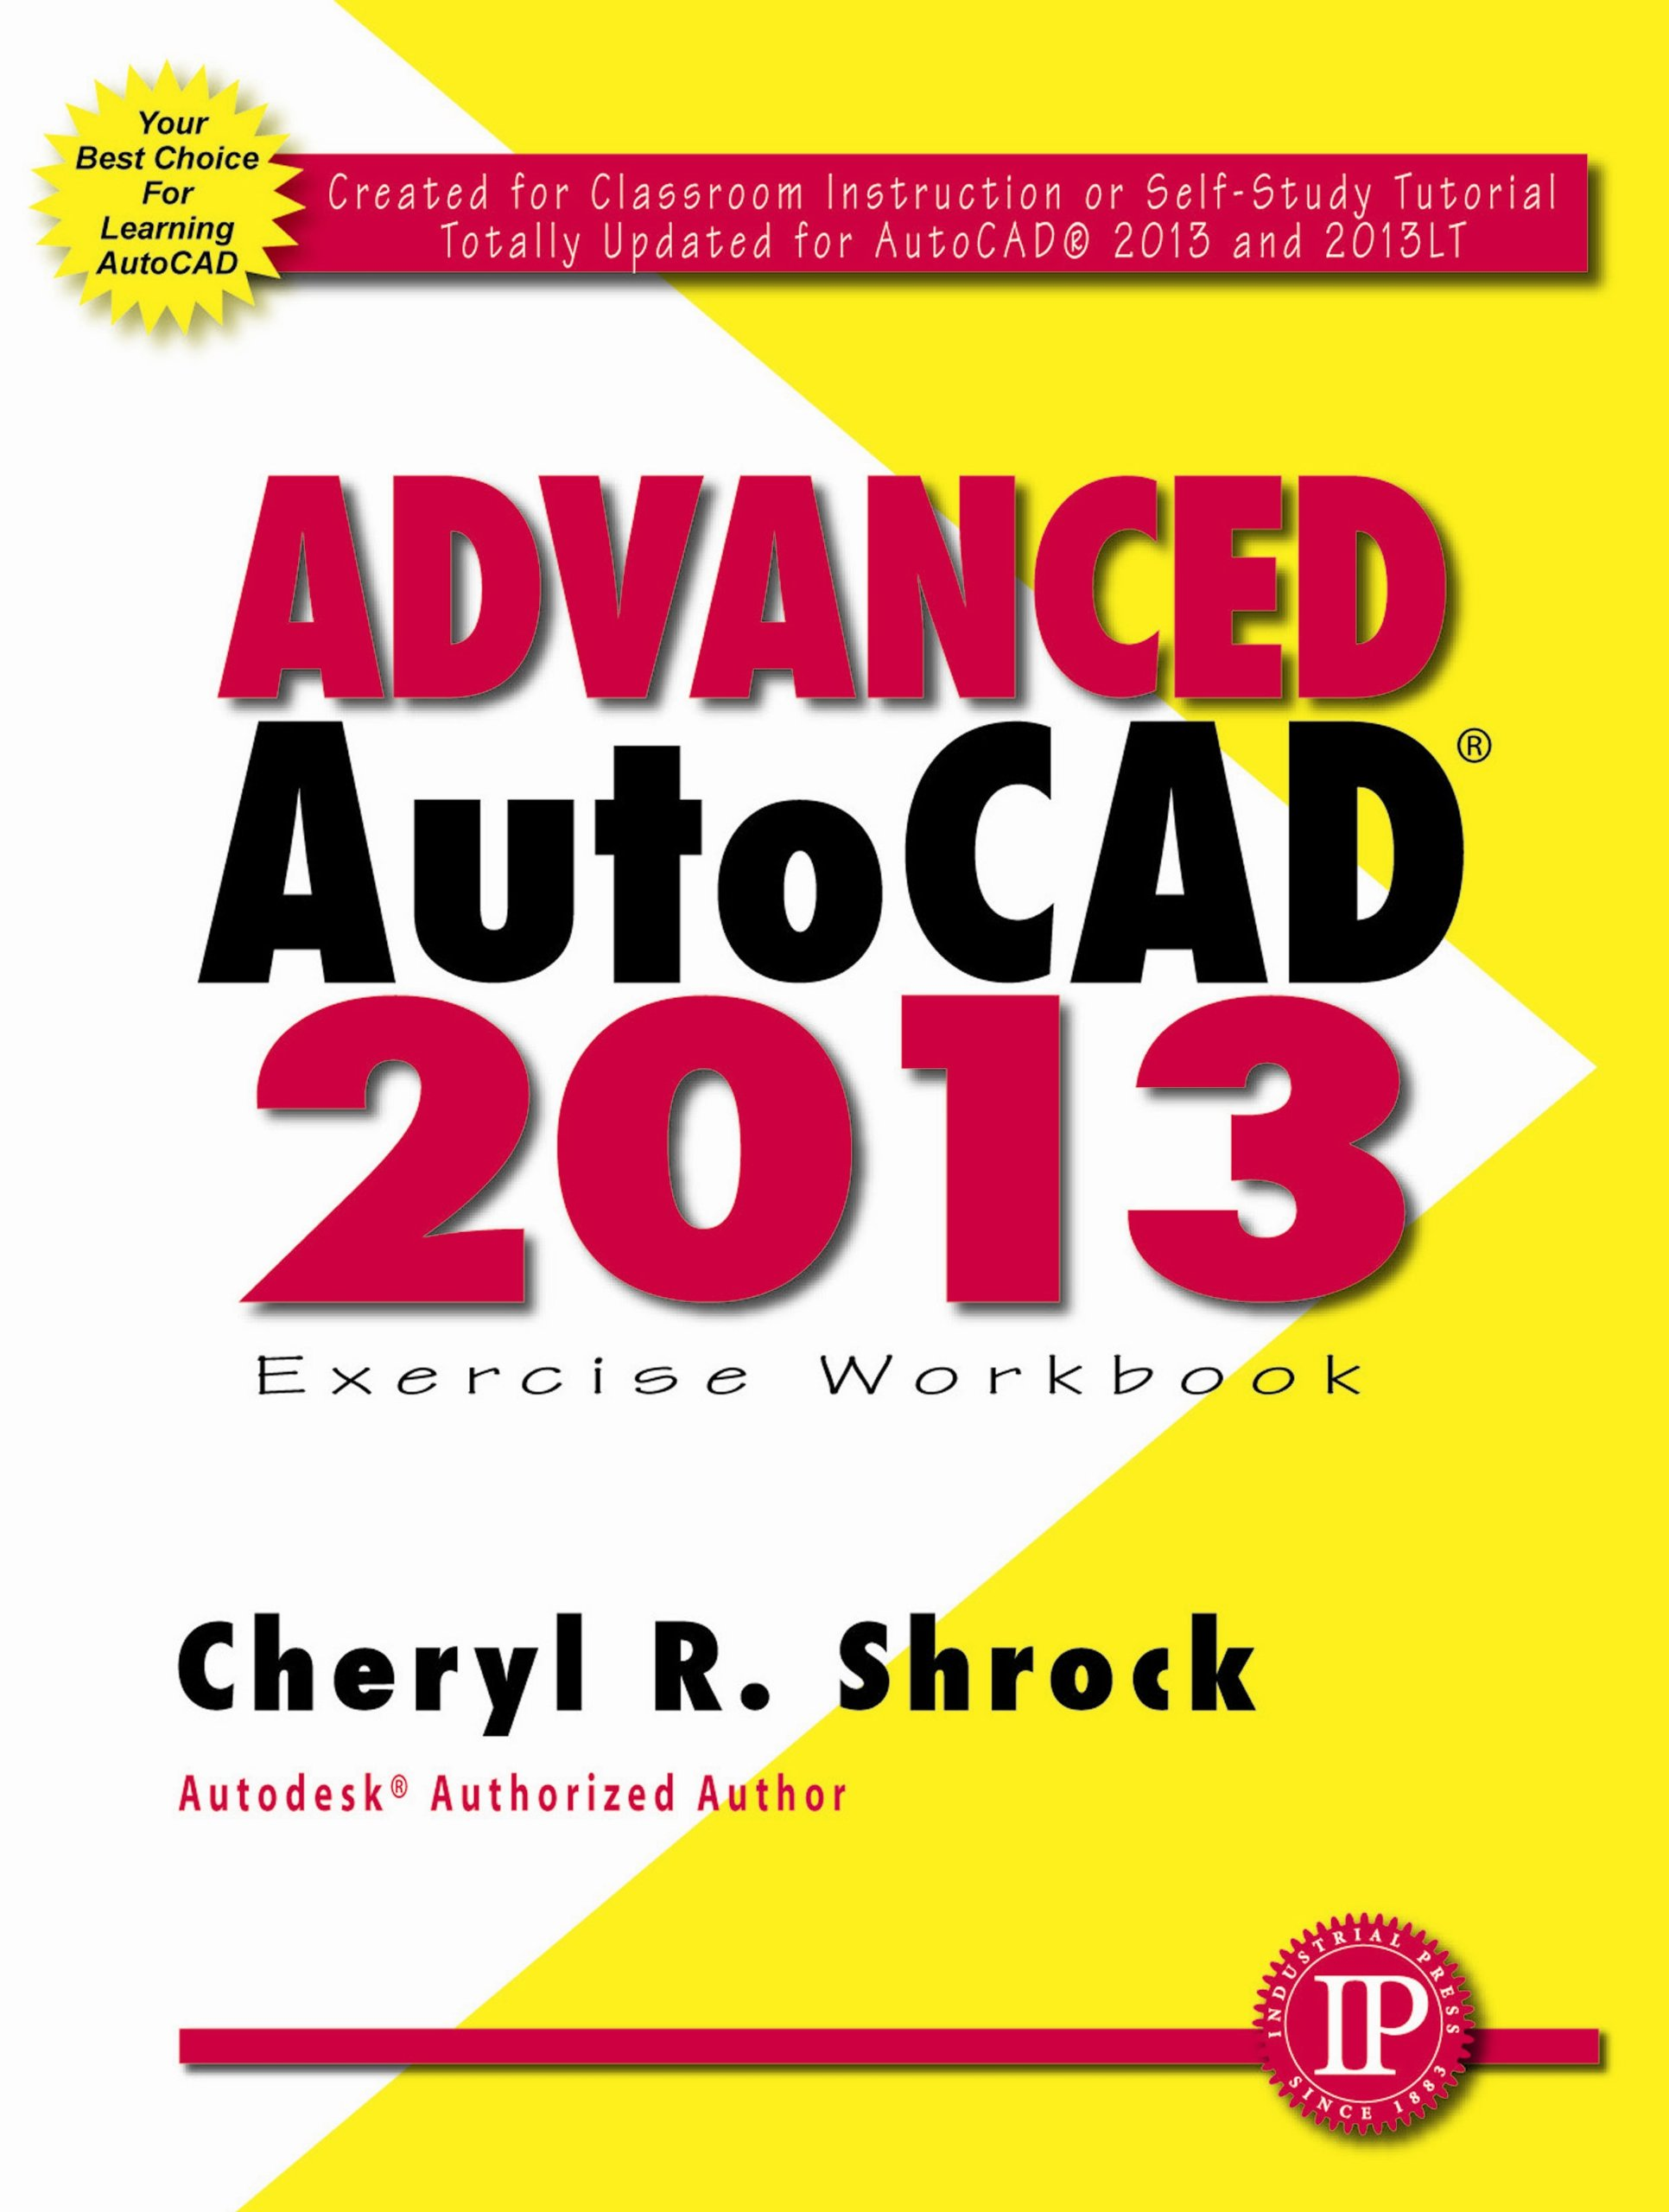 Advanced autocad 2013 cheryl r shrock 9780831134570 amazon advanced autocad 2013 cheryl r shrock 9780831134570 amazon books baditri Image collections